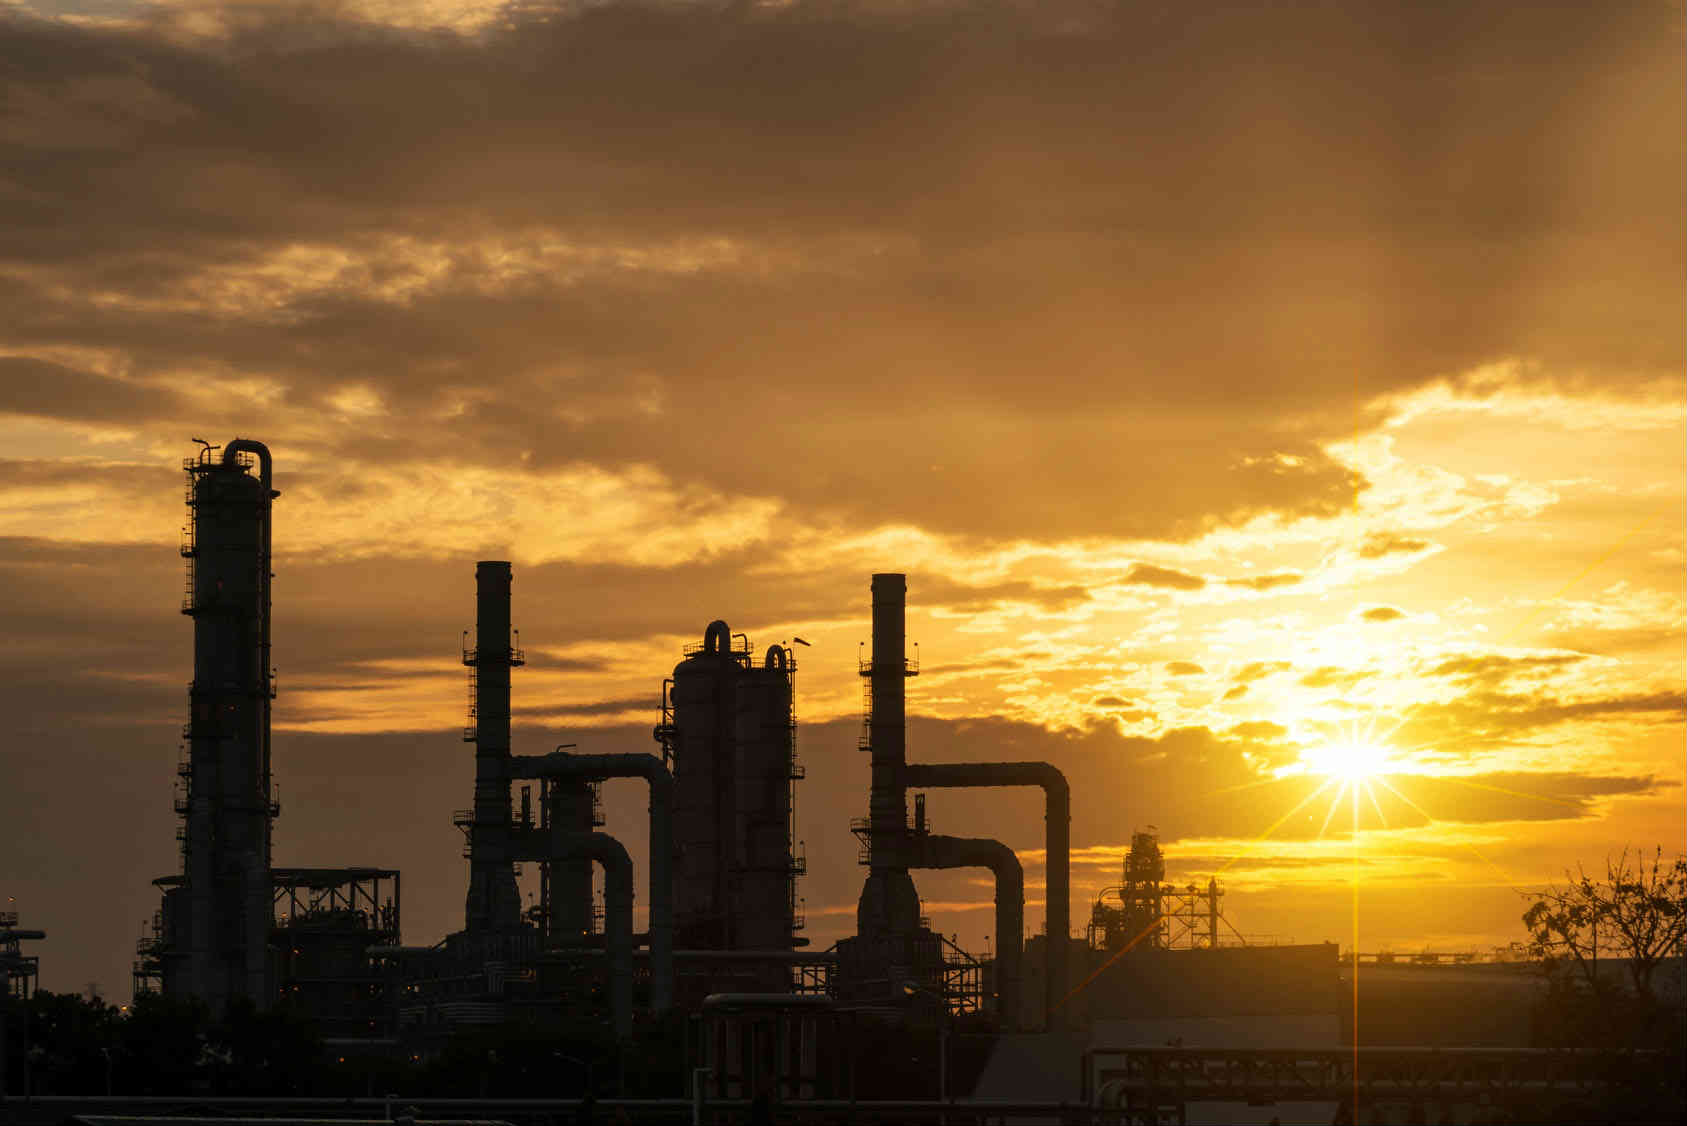 Refinery during sunset